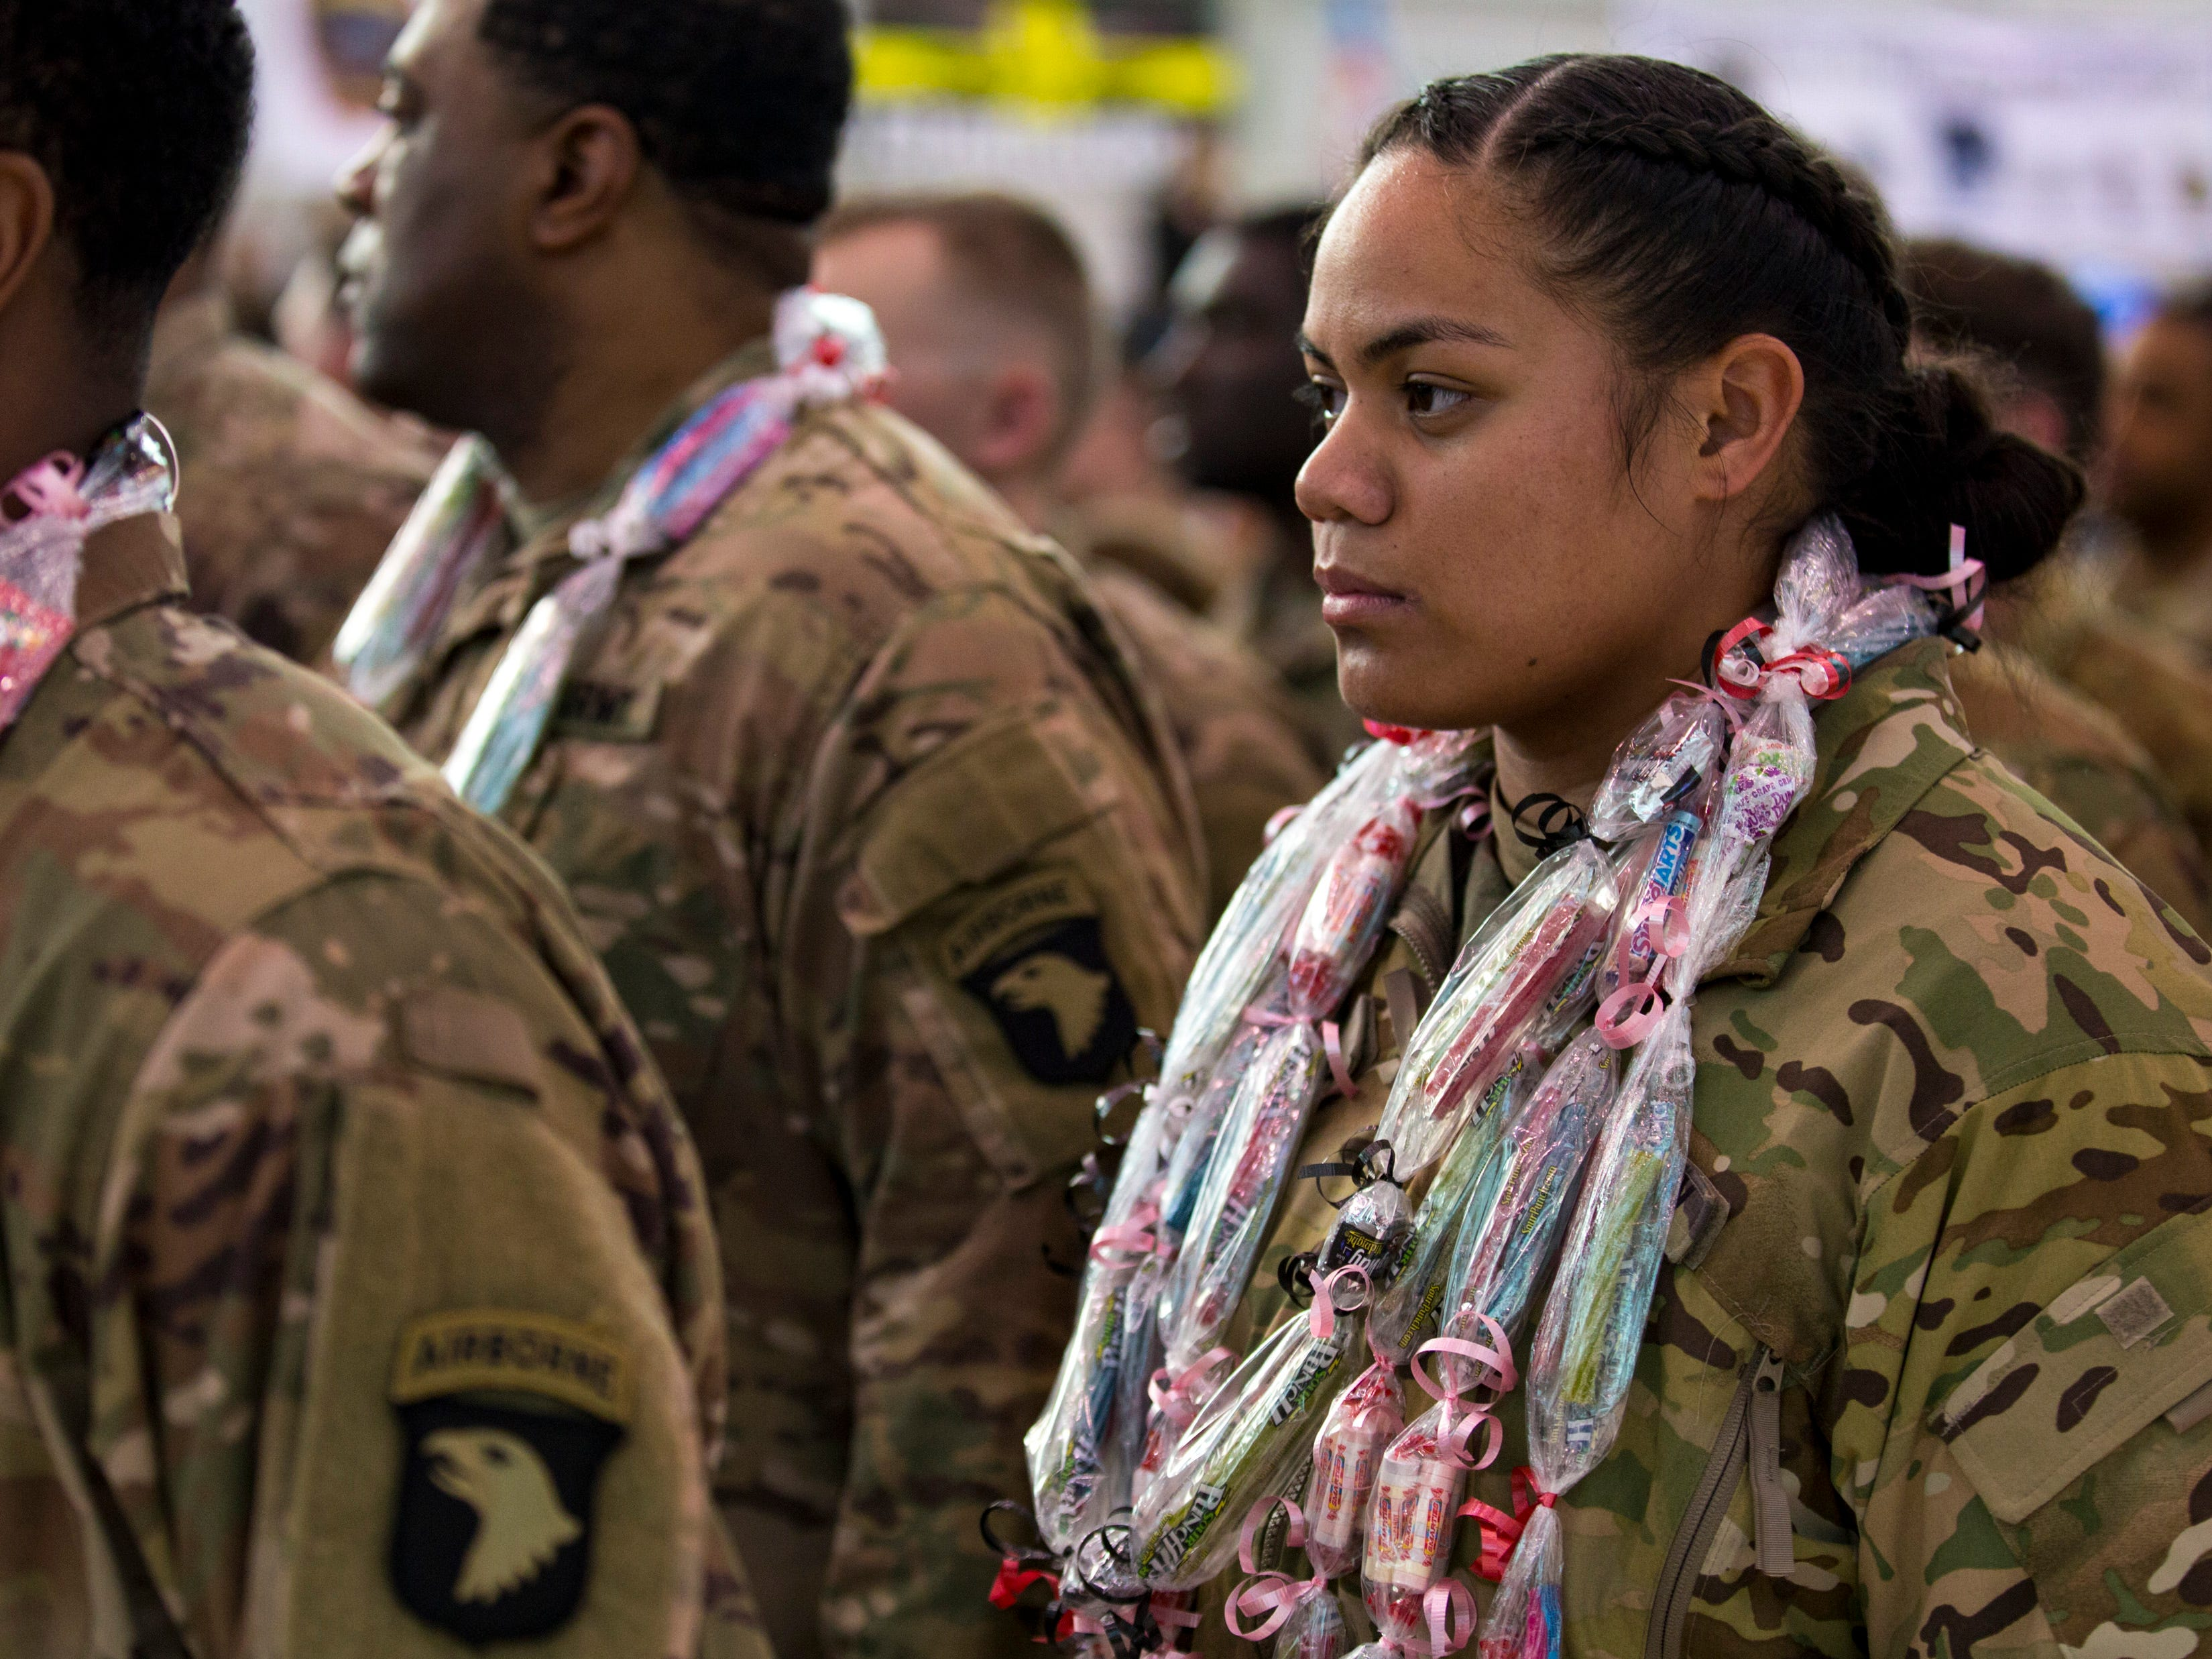 Leama Abelene wears a necklace made of candy given to her by her family during a homecoming ceremony for members of the 101st Combat Aviation Brigade and 101st Sustainment Brigade at Fort Campbell in Clarksville on Thursday, Feb. 21, 2019. The soldiers were returning from a nine-month deployment to Afghanistan.